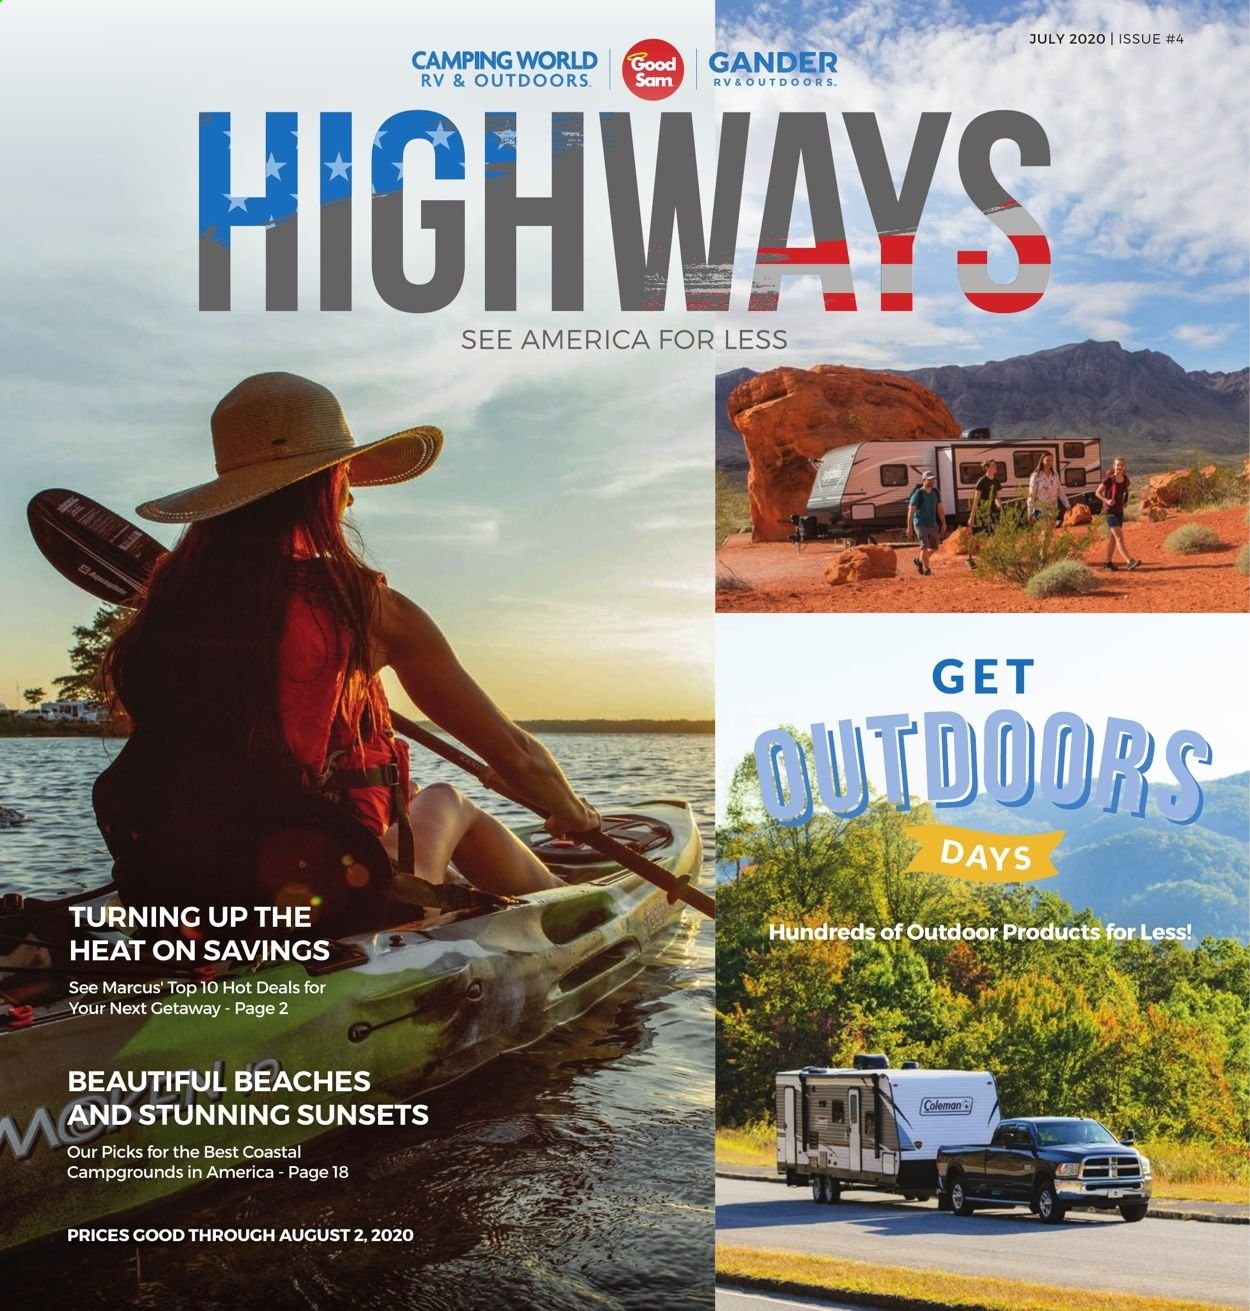 Gander RV & Outdoors Flyer  - 07.01.2020 - 08.02.2020. Page 1.